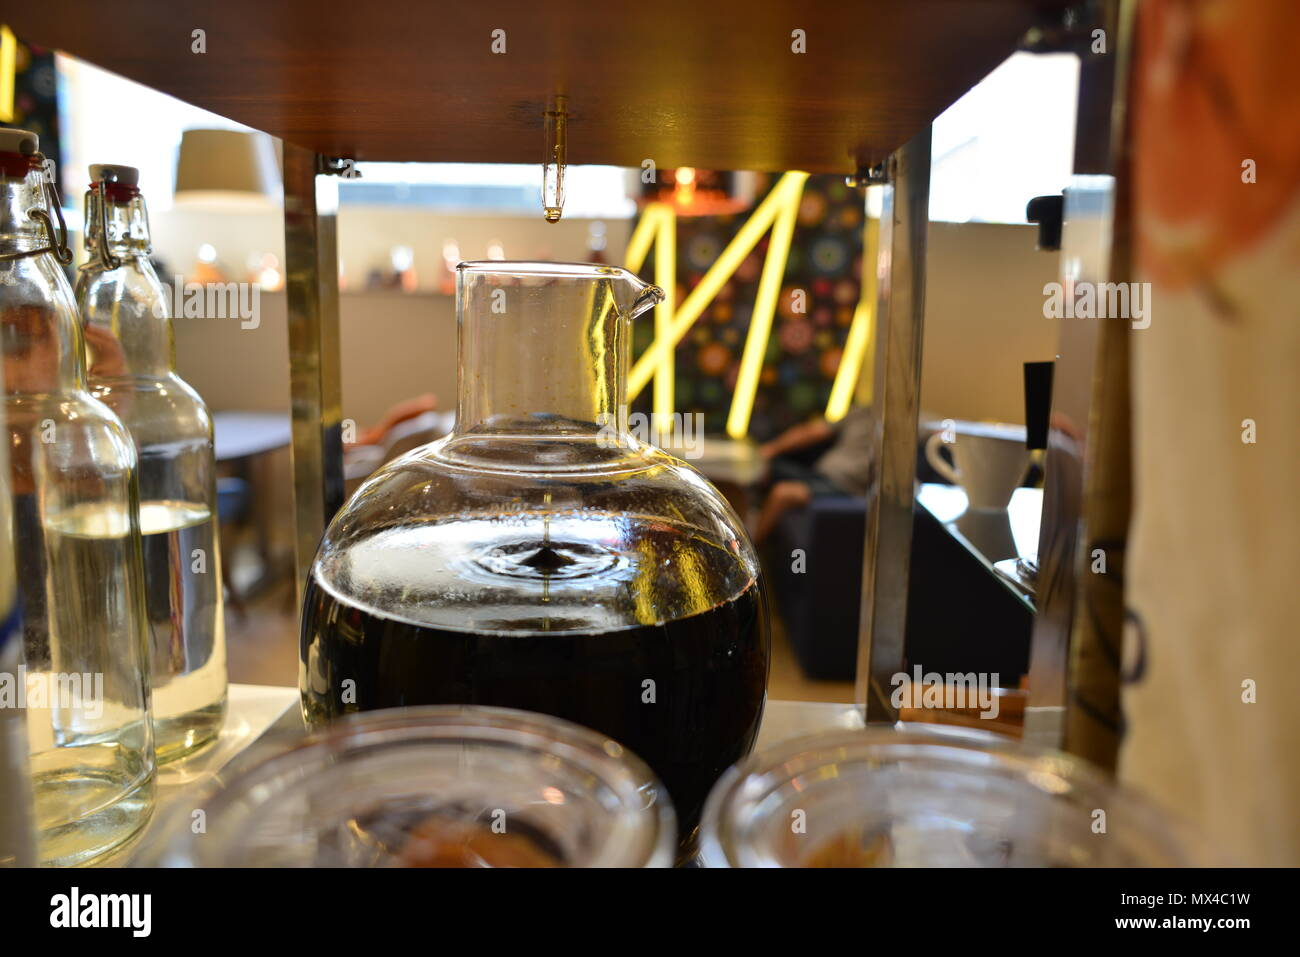 Coffee brewing at the cold brew glass device - Stock Image